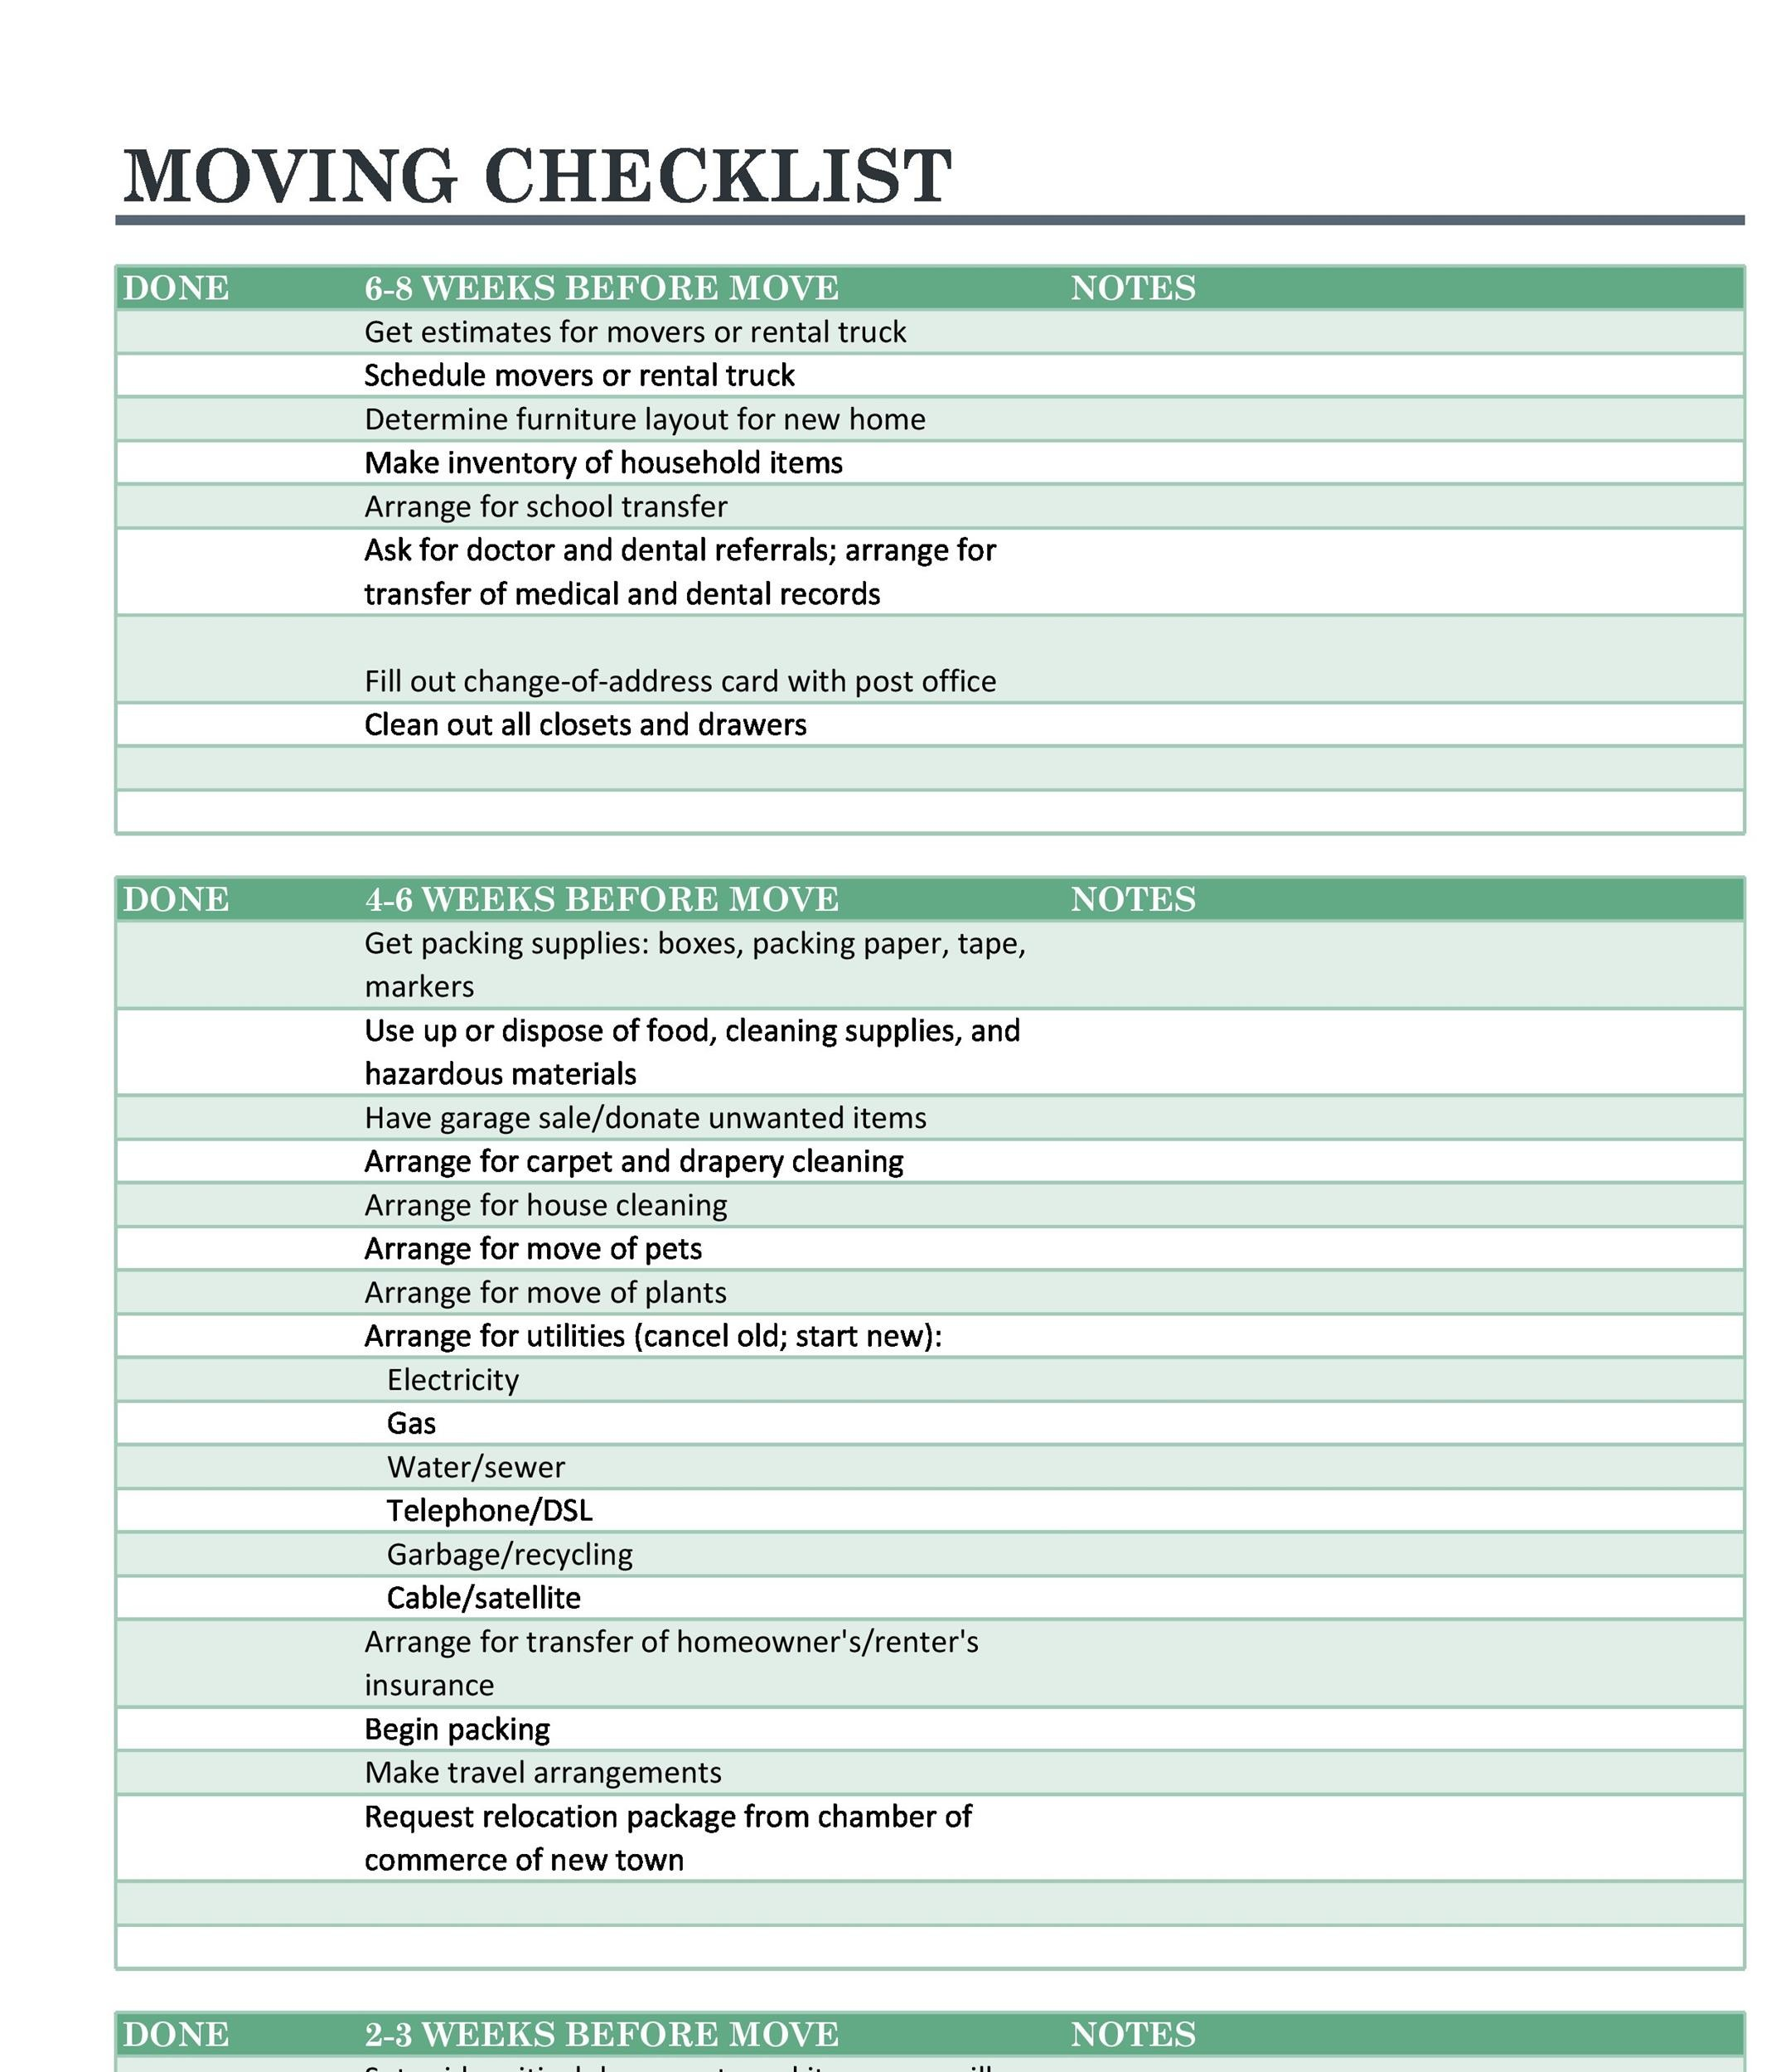 45 great moving checklists checklist for moving in out